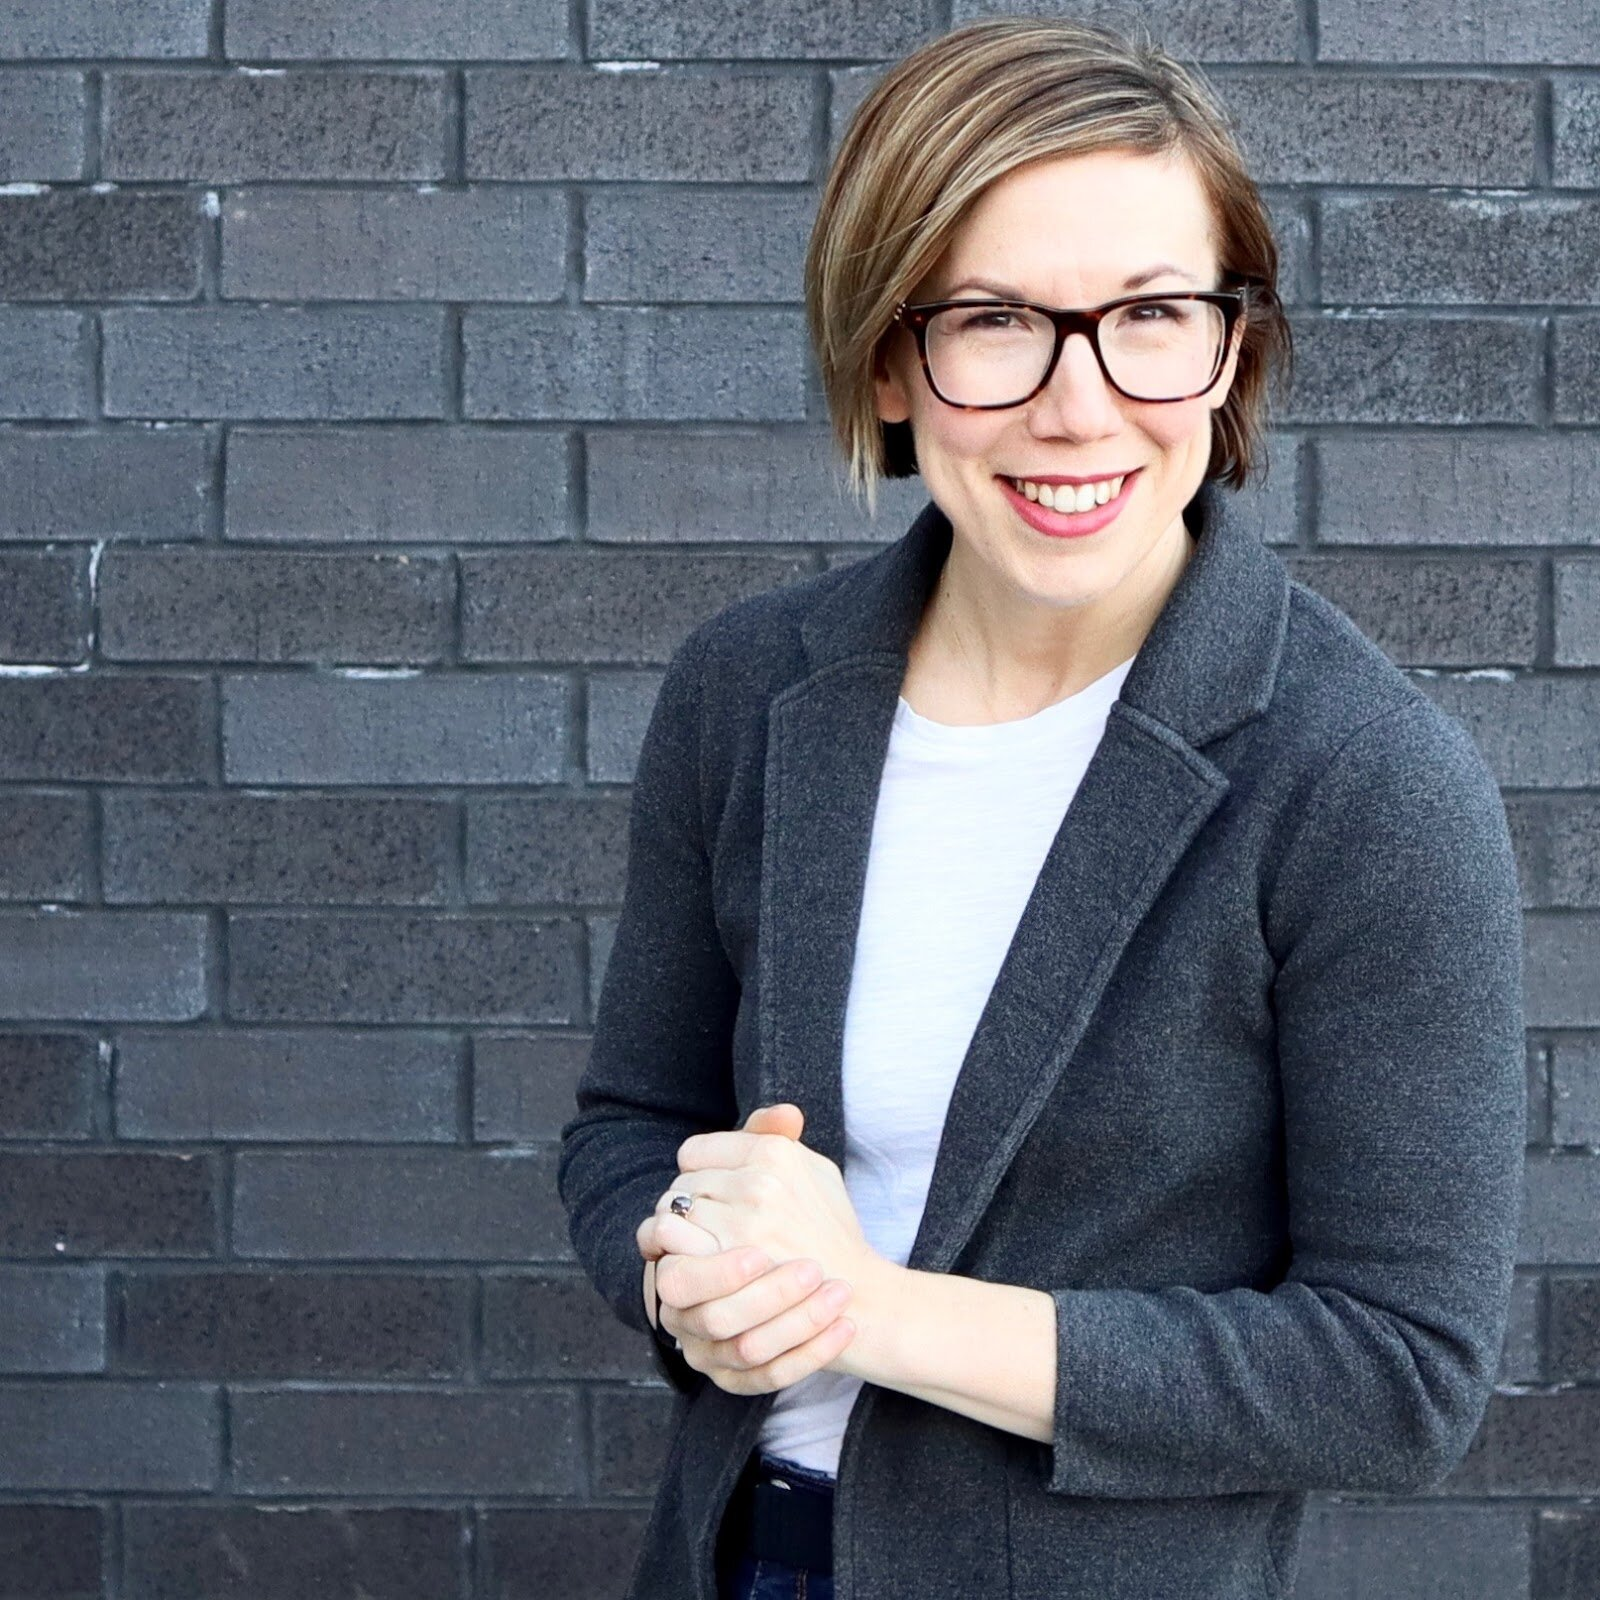 Tara McMullin - host of the What Works podcast and founder of the What Works network